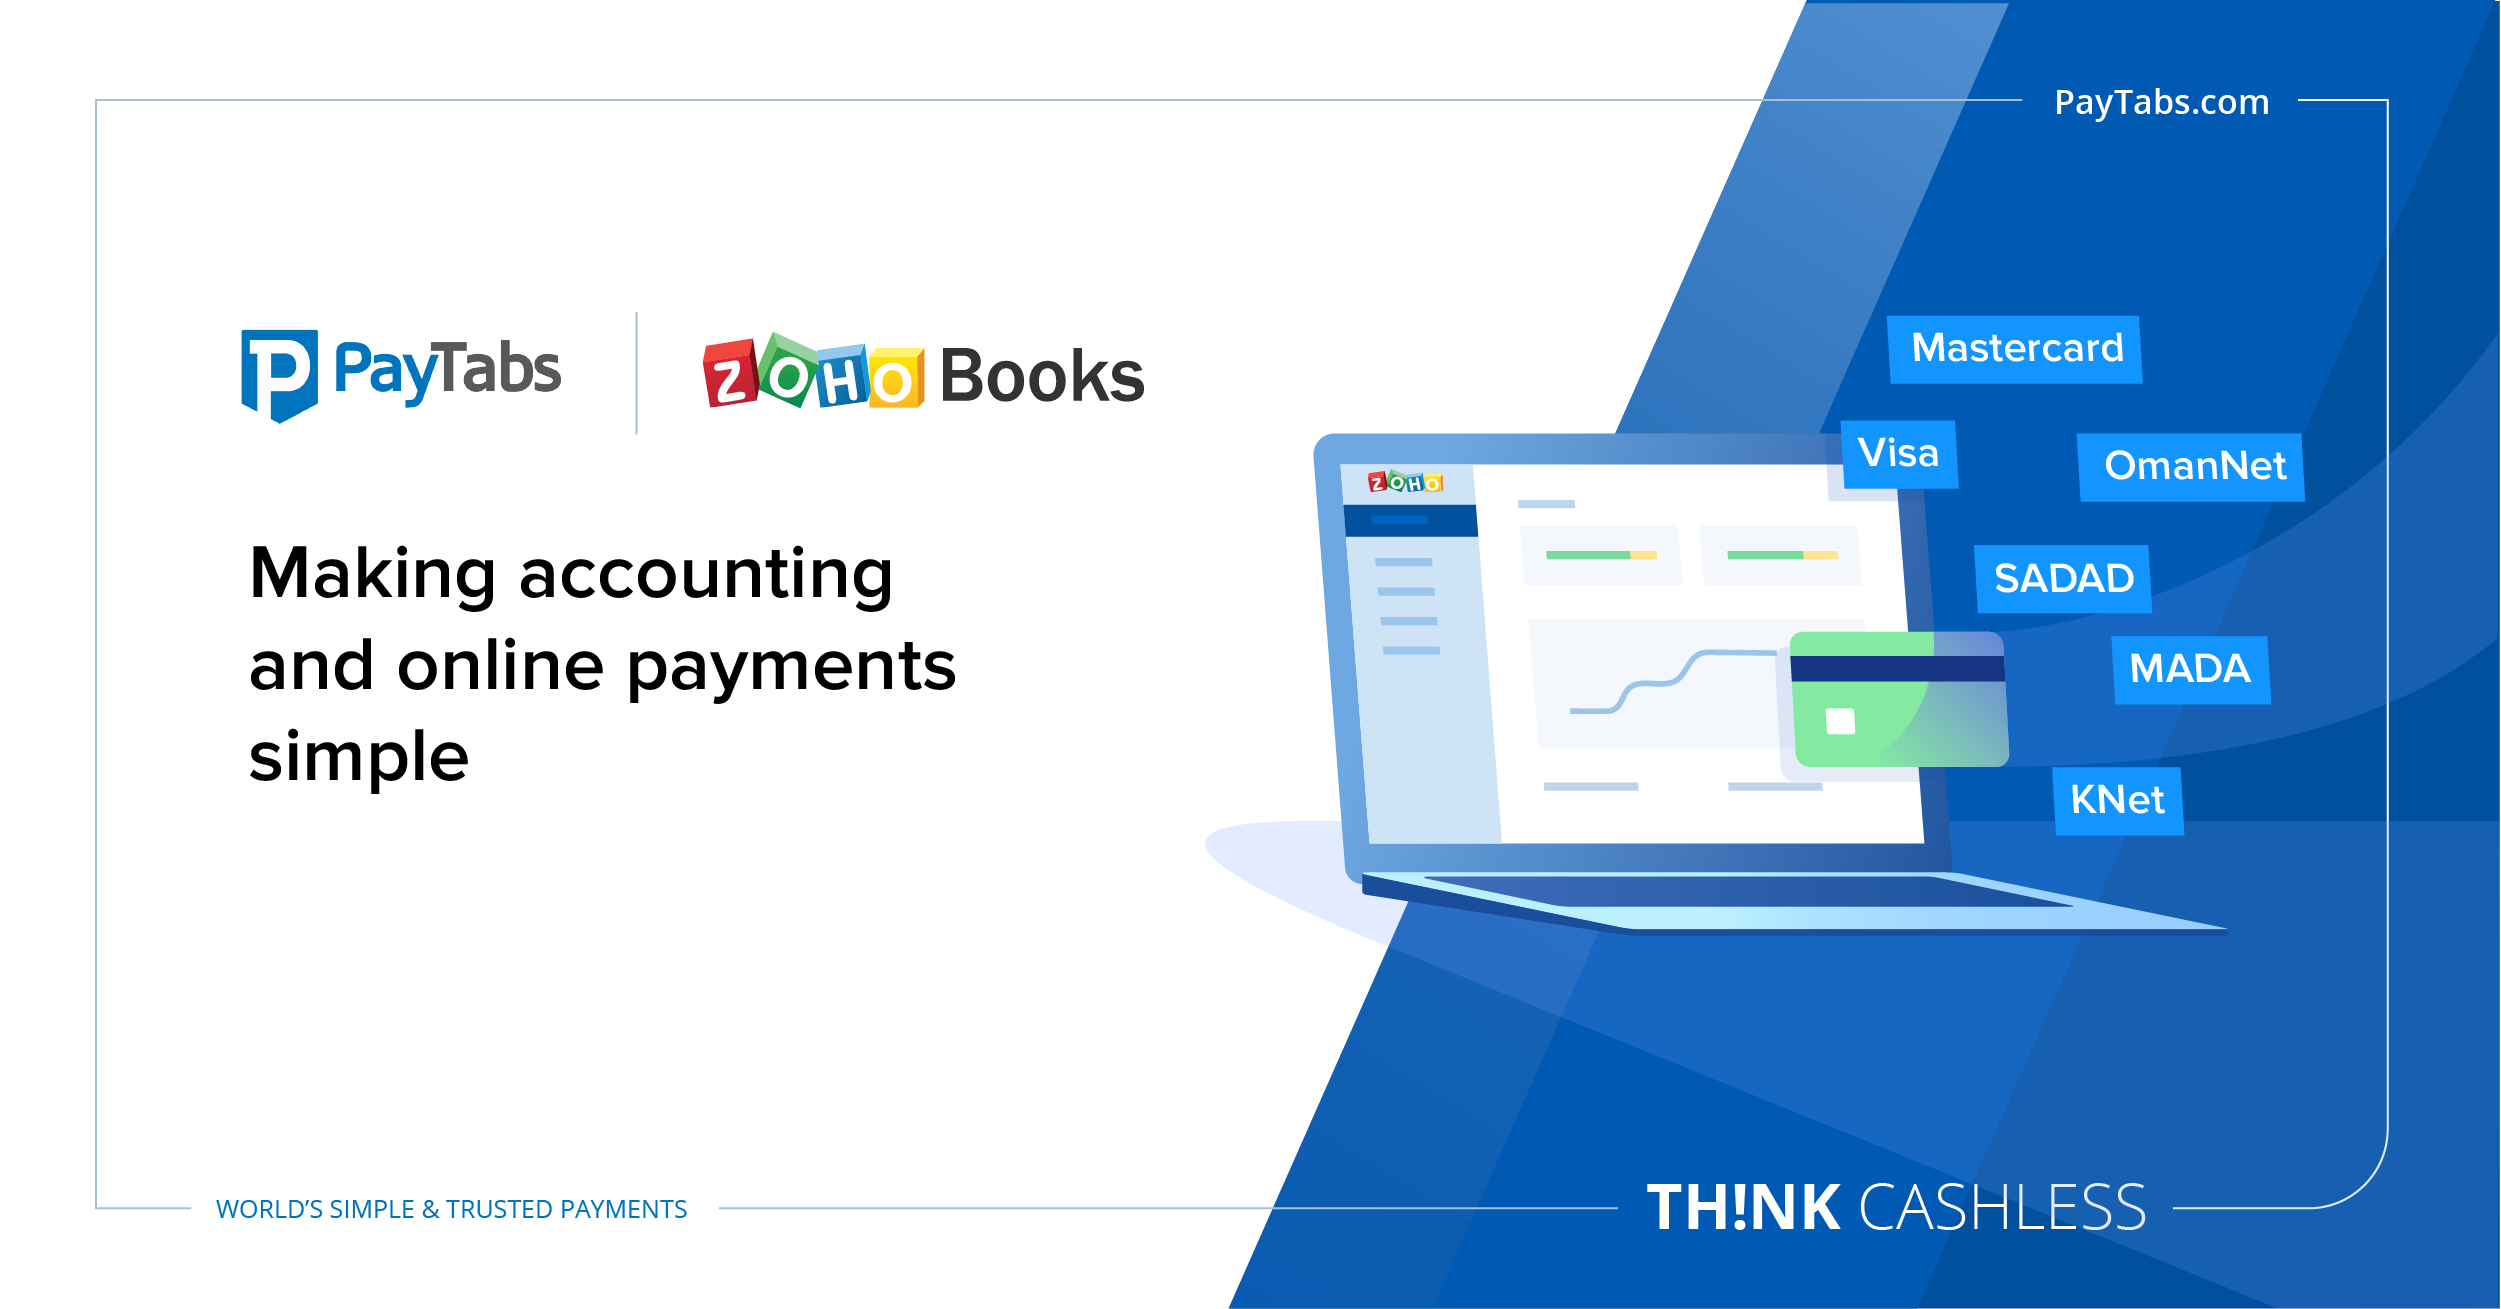 PayTabs' winning alliance with Zoho Books